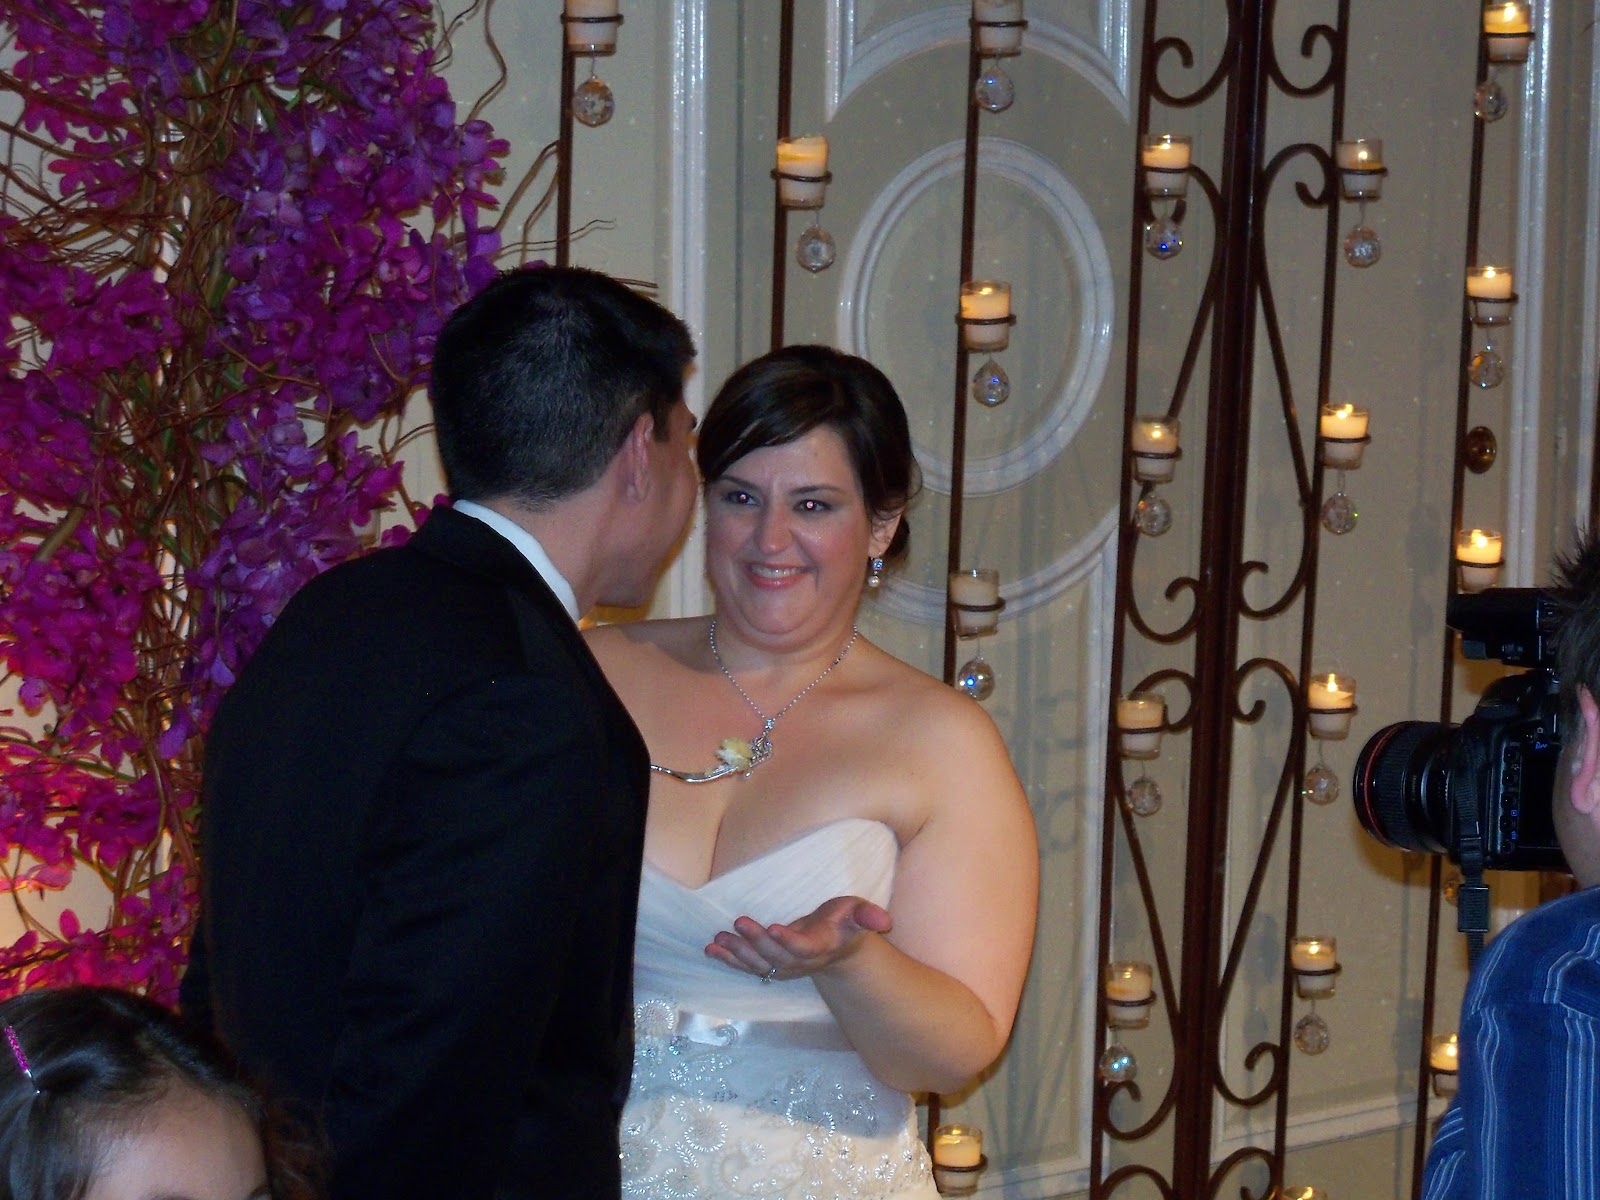 Megan Neal and Mark Suarez wedding - 100_8378.JPG